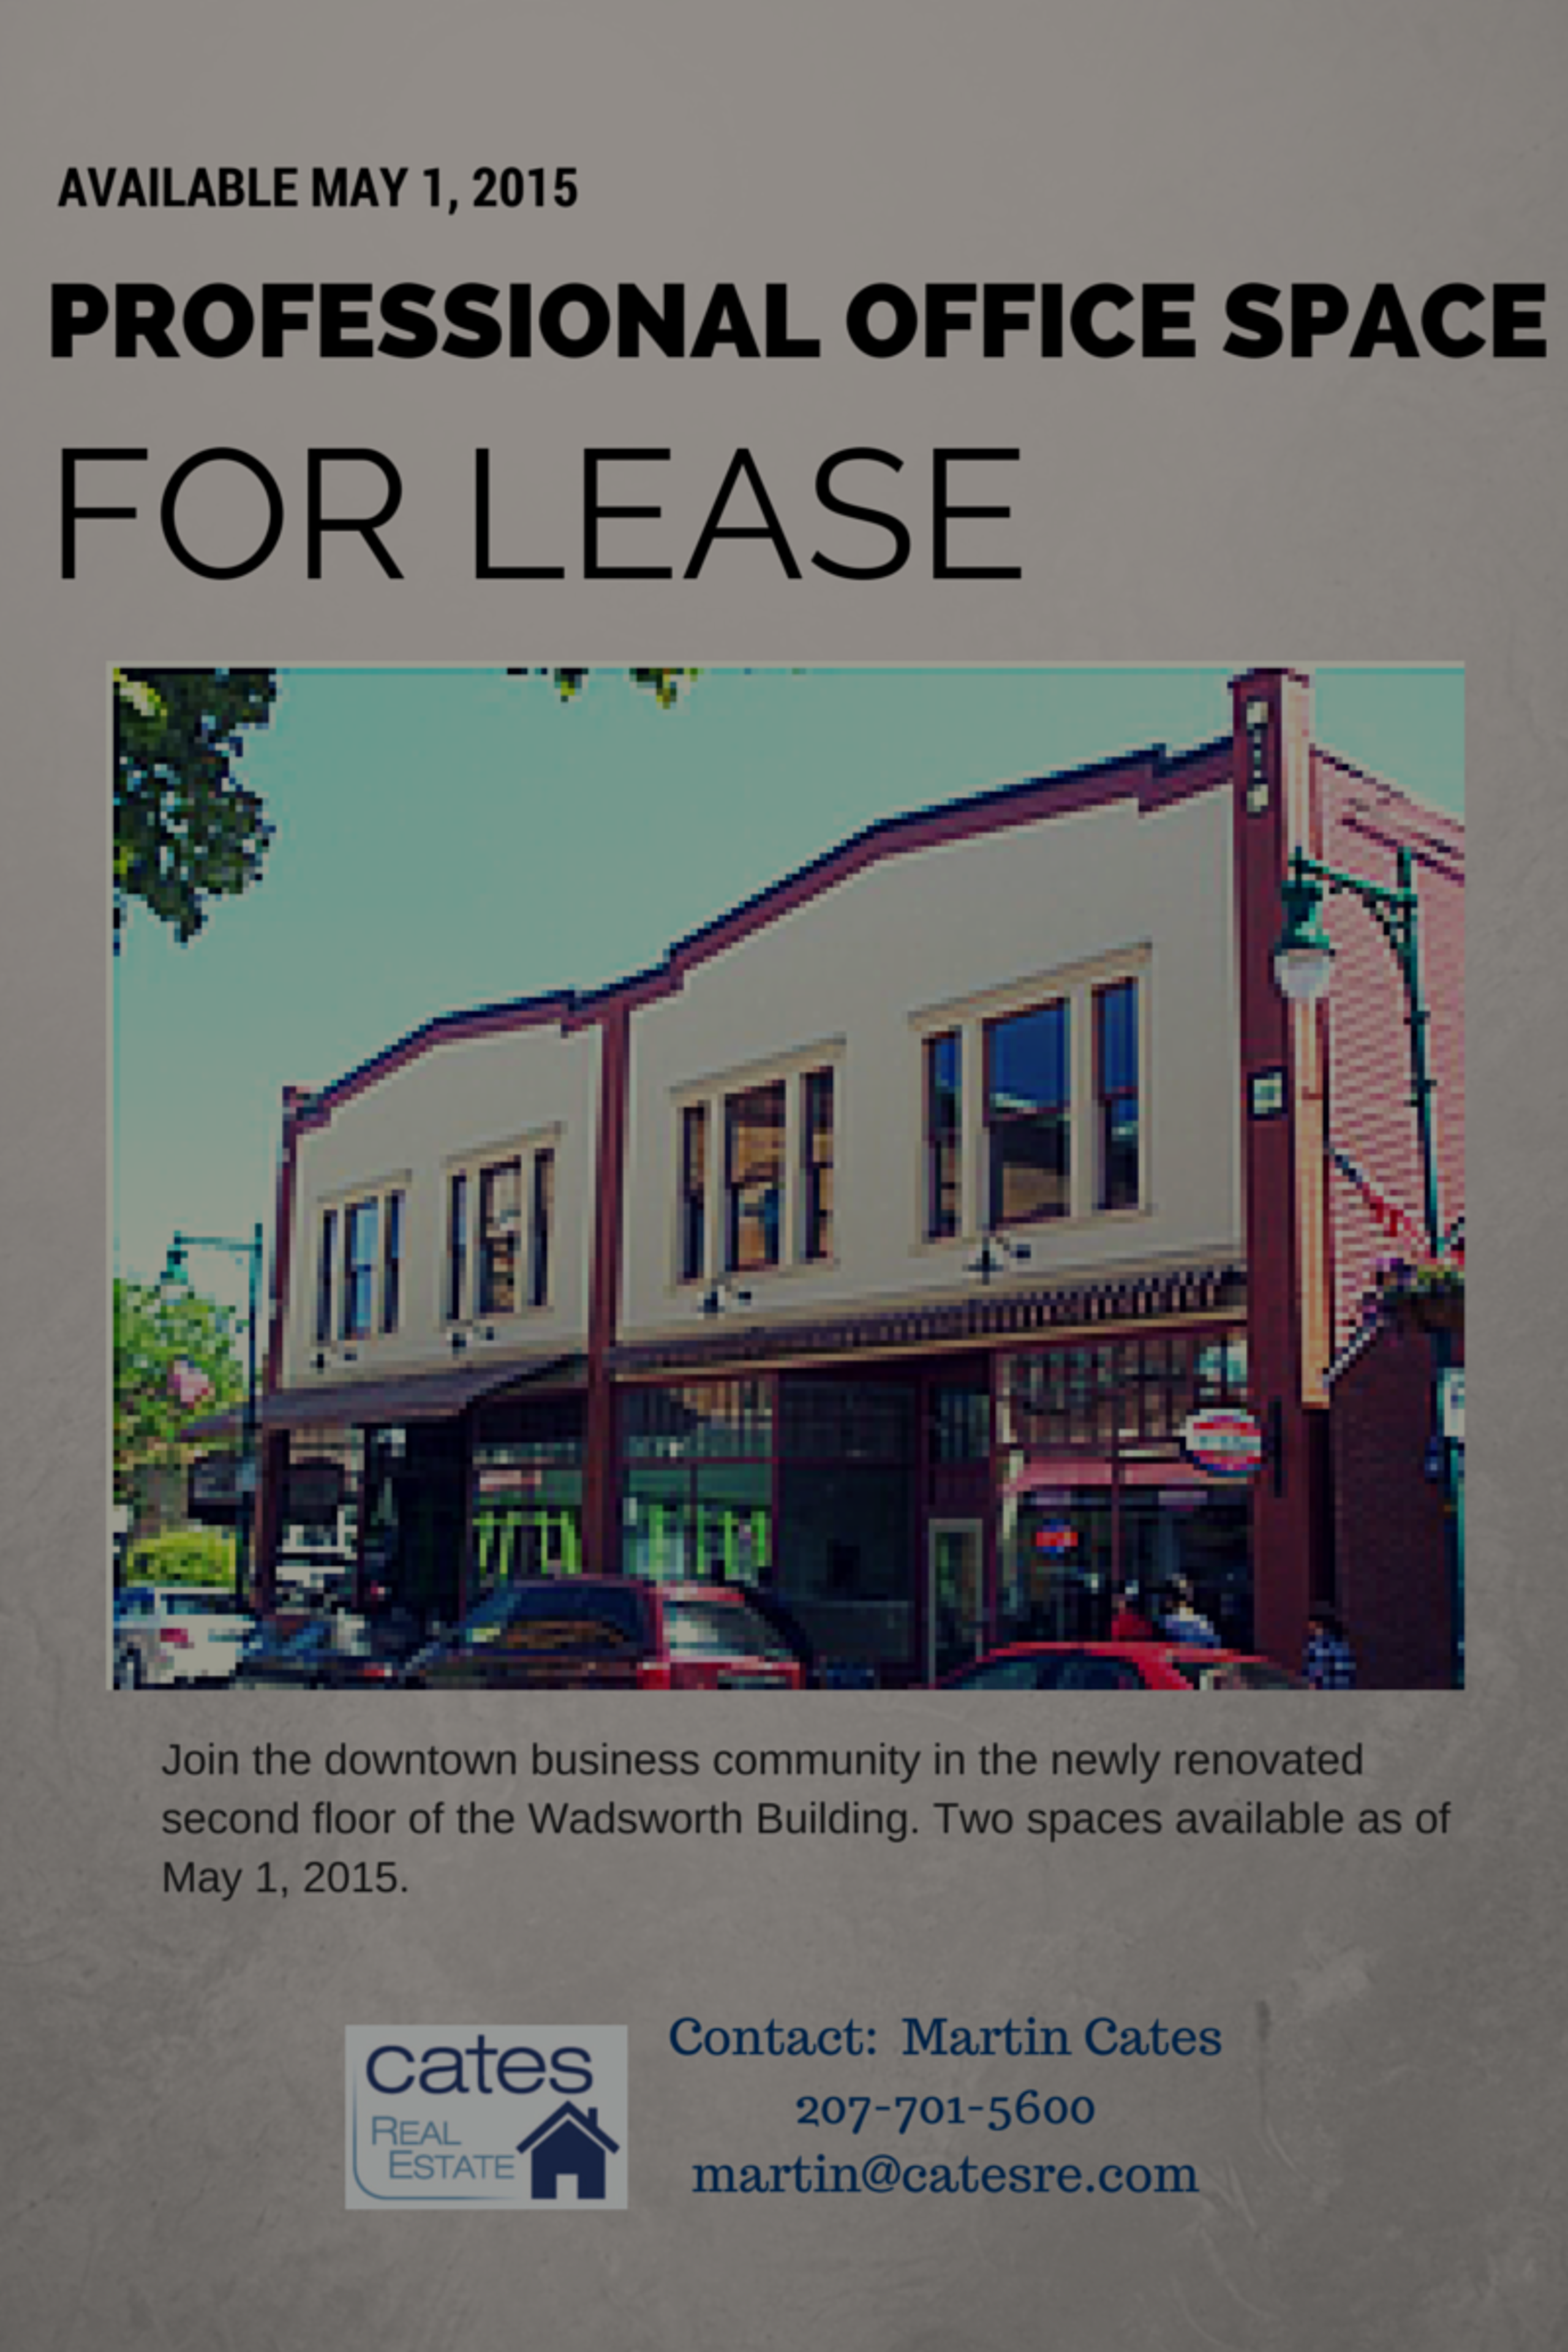 Professional Office Space for Lease: Downtown Rockland